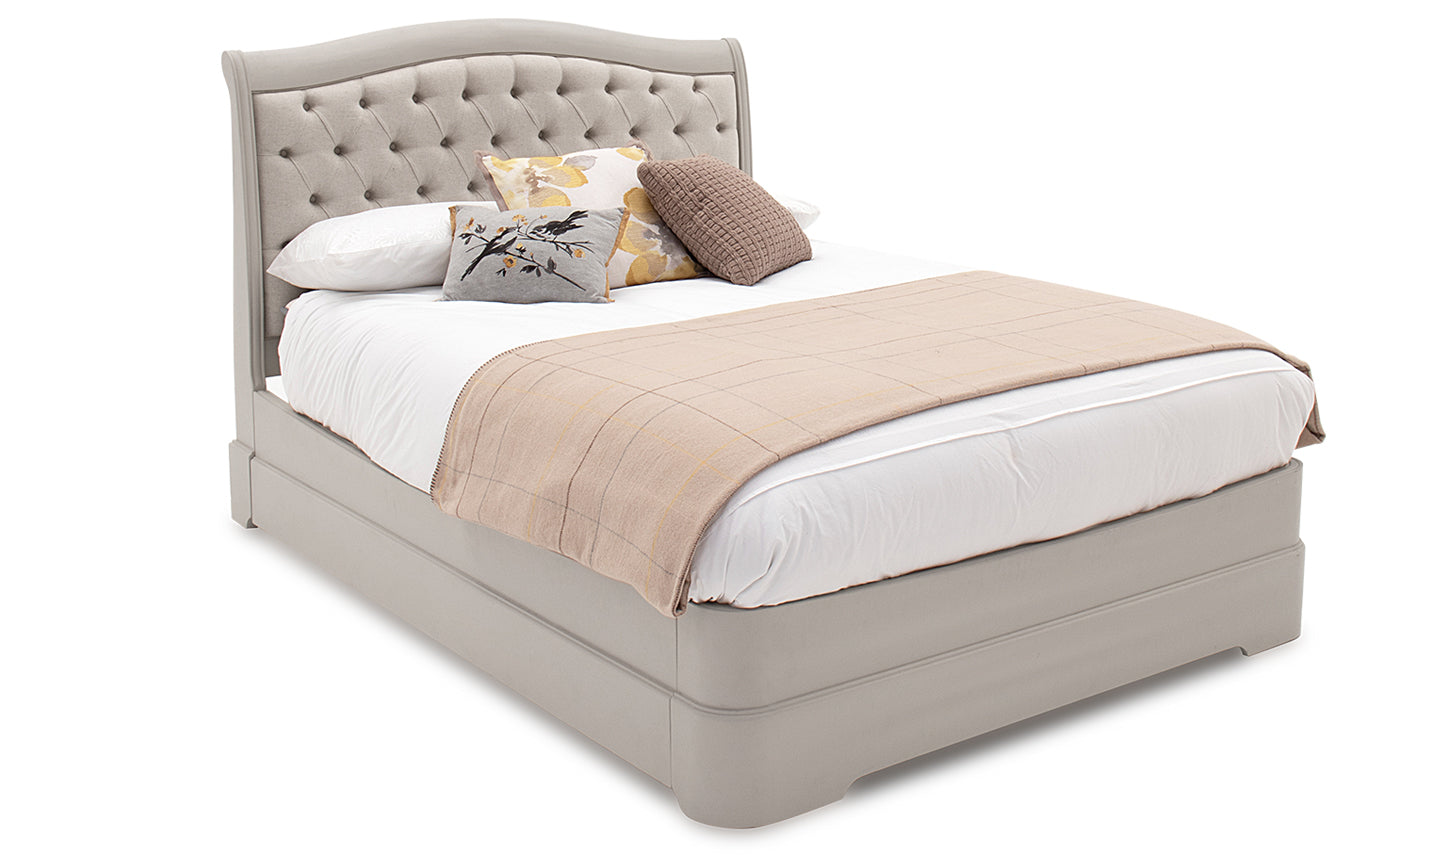 Mabel Bed Upholstered Headboard - 6'